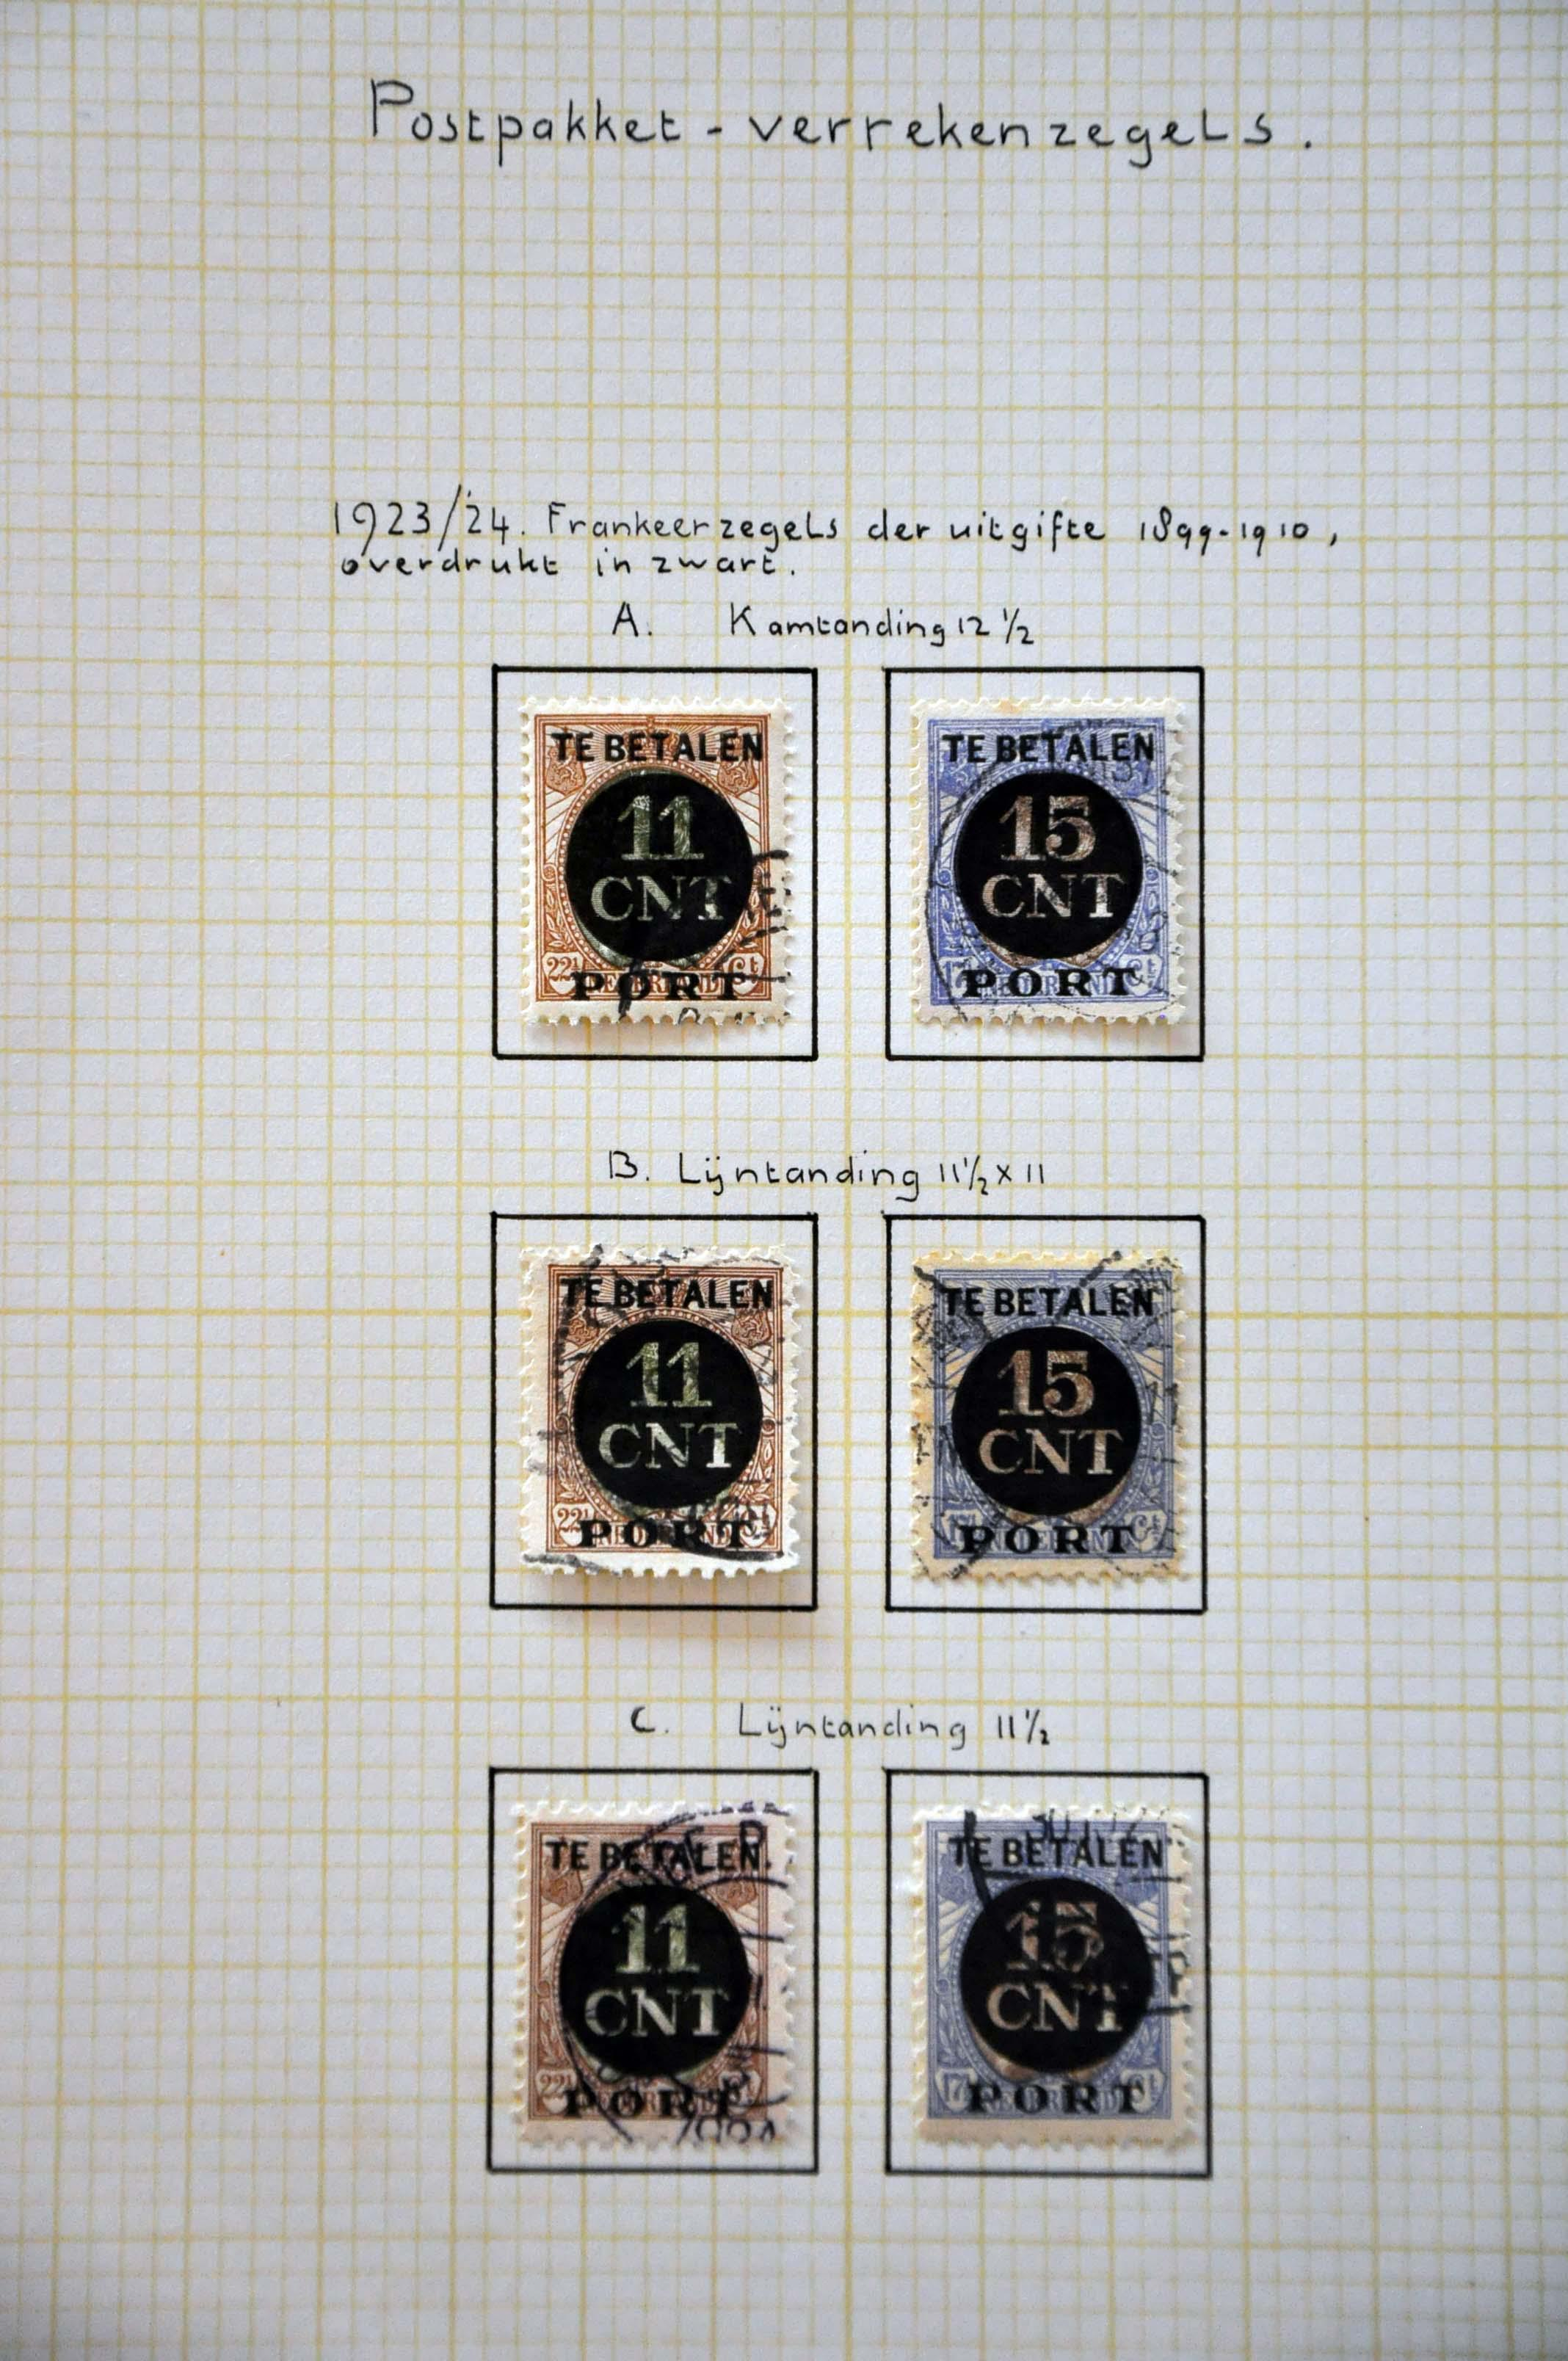 Lot 1615 - Netherlands and former colonies Netherlands -  Corinphila Veilingen Auction 250-253 - Day 2 - Coins, medals, Netherlands and former colonies